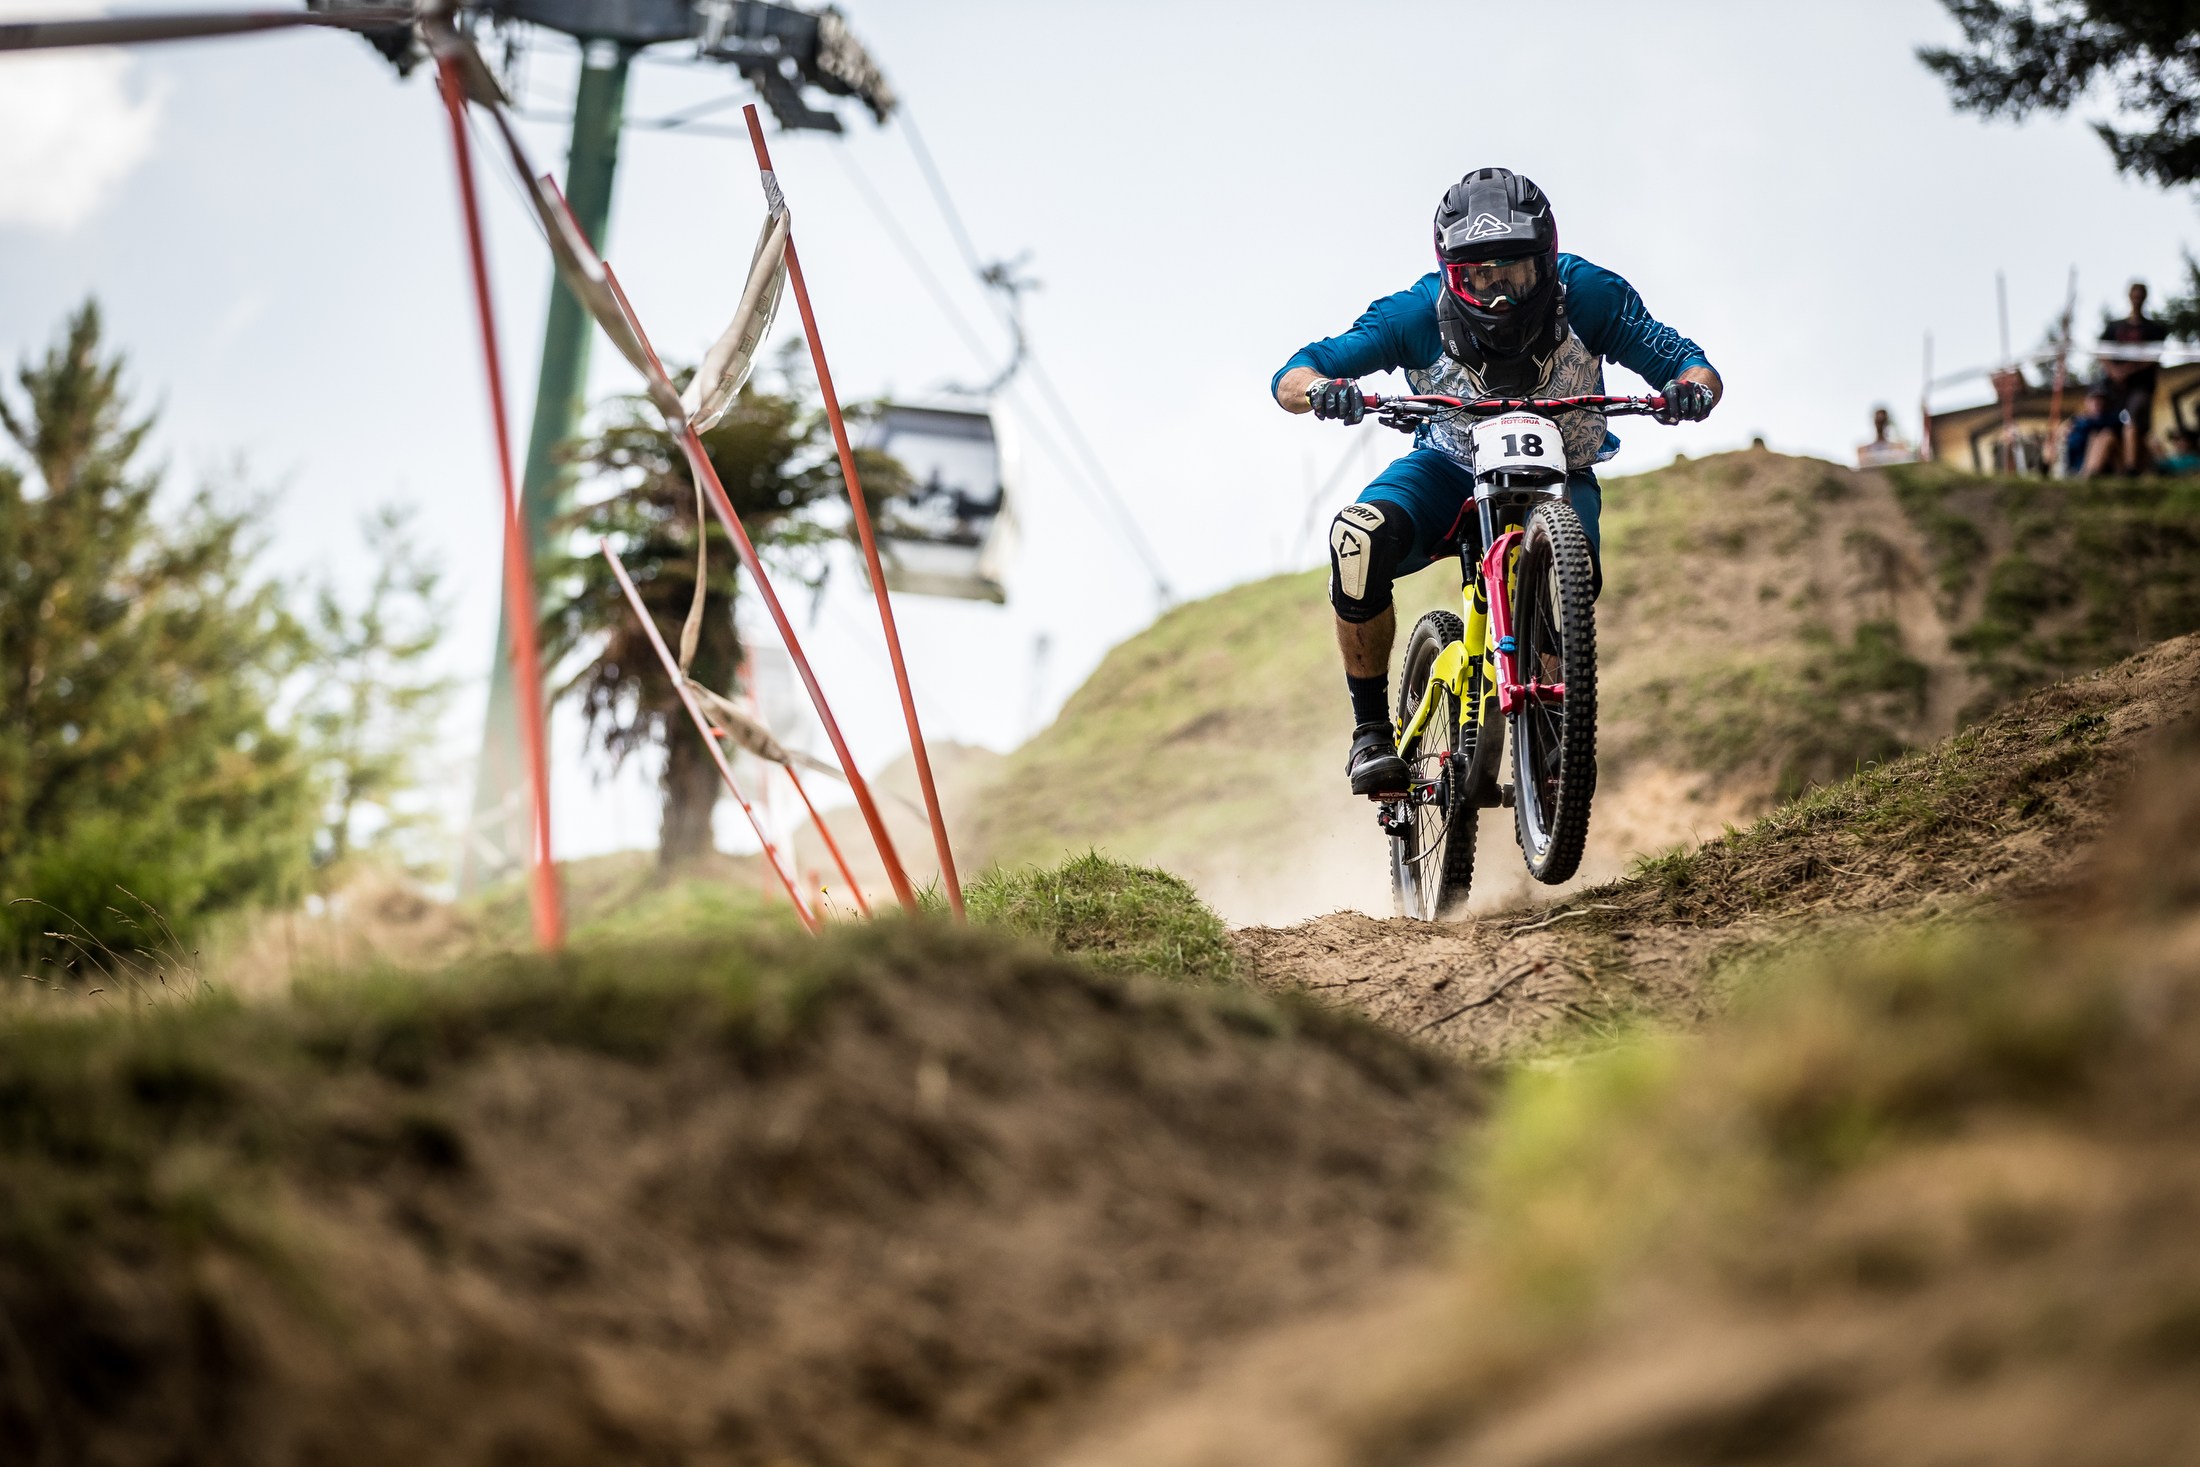 Jackson Frew and Connor Fearon finsh  first and second at 2019 DH Oceanias